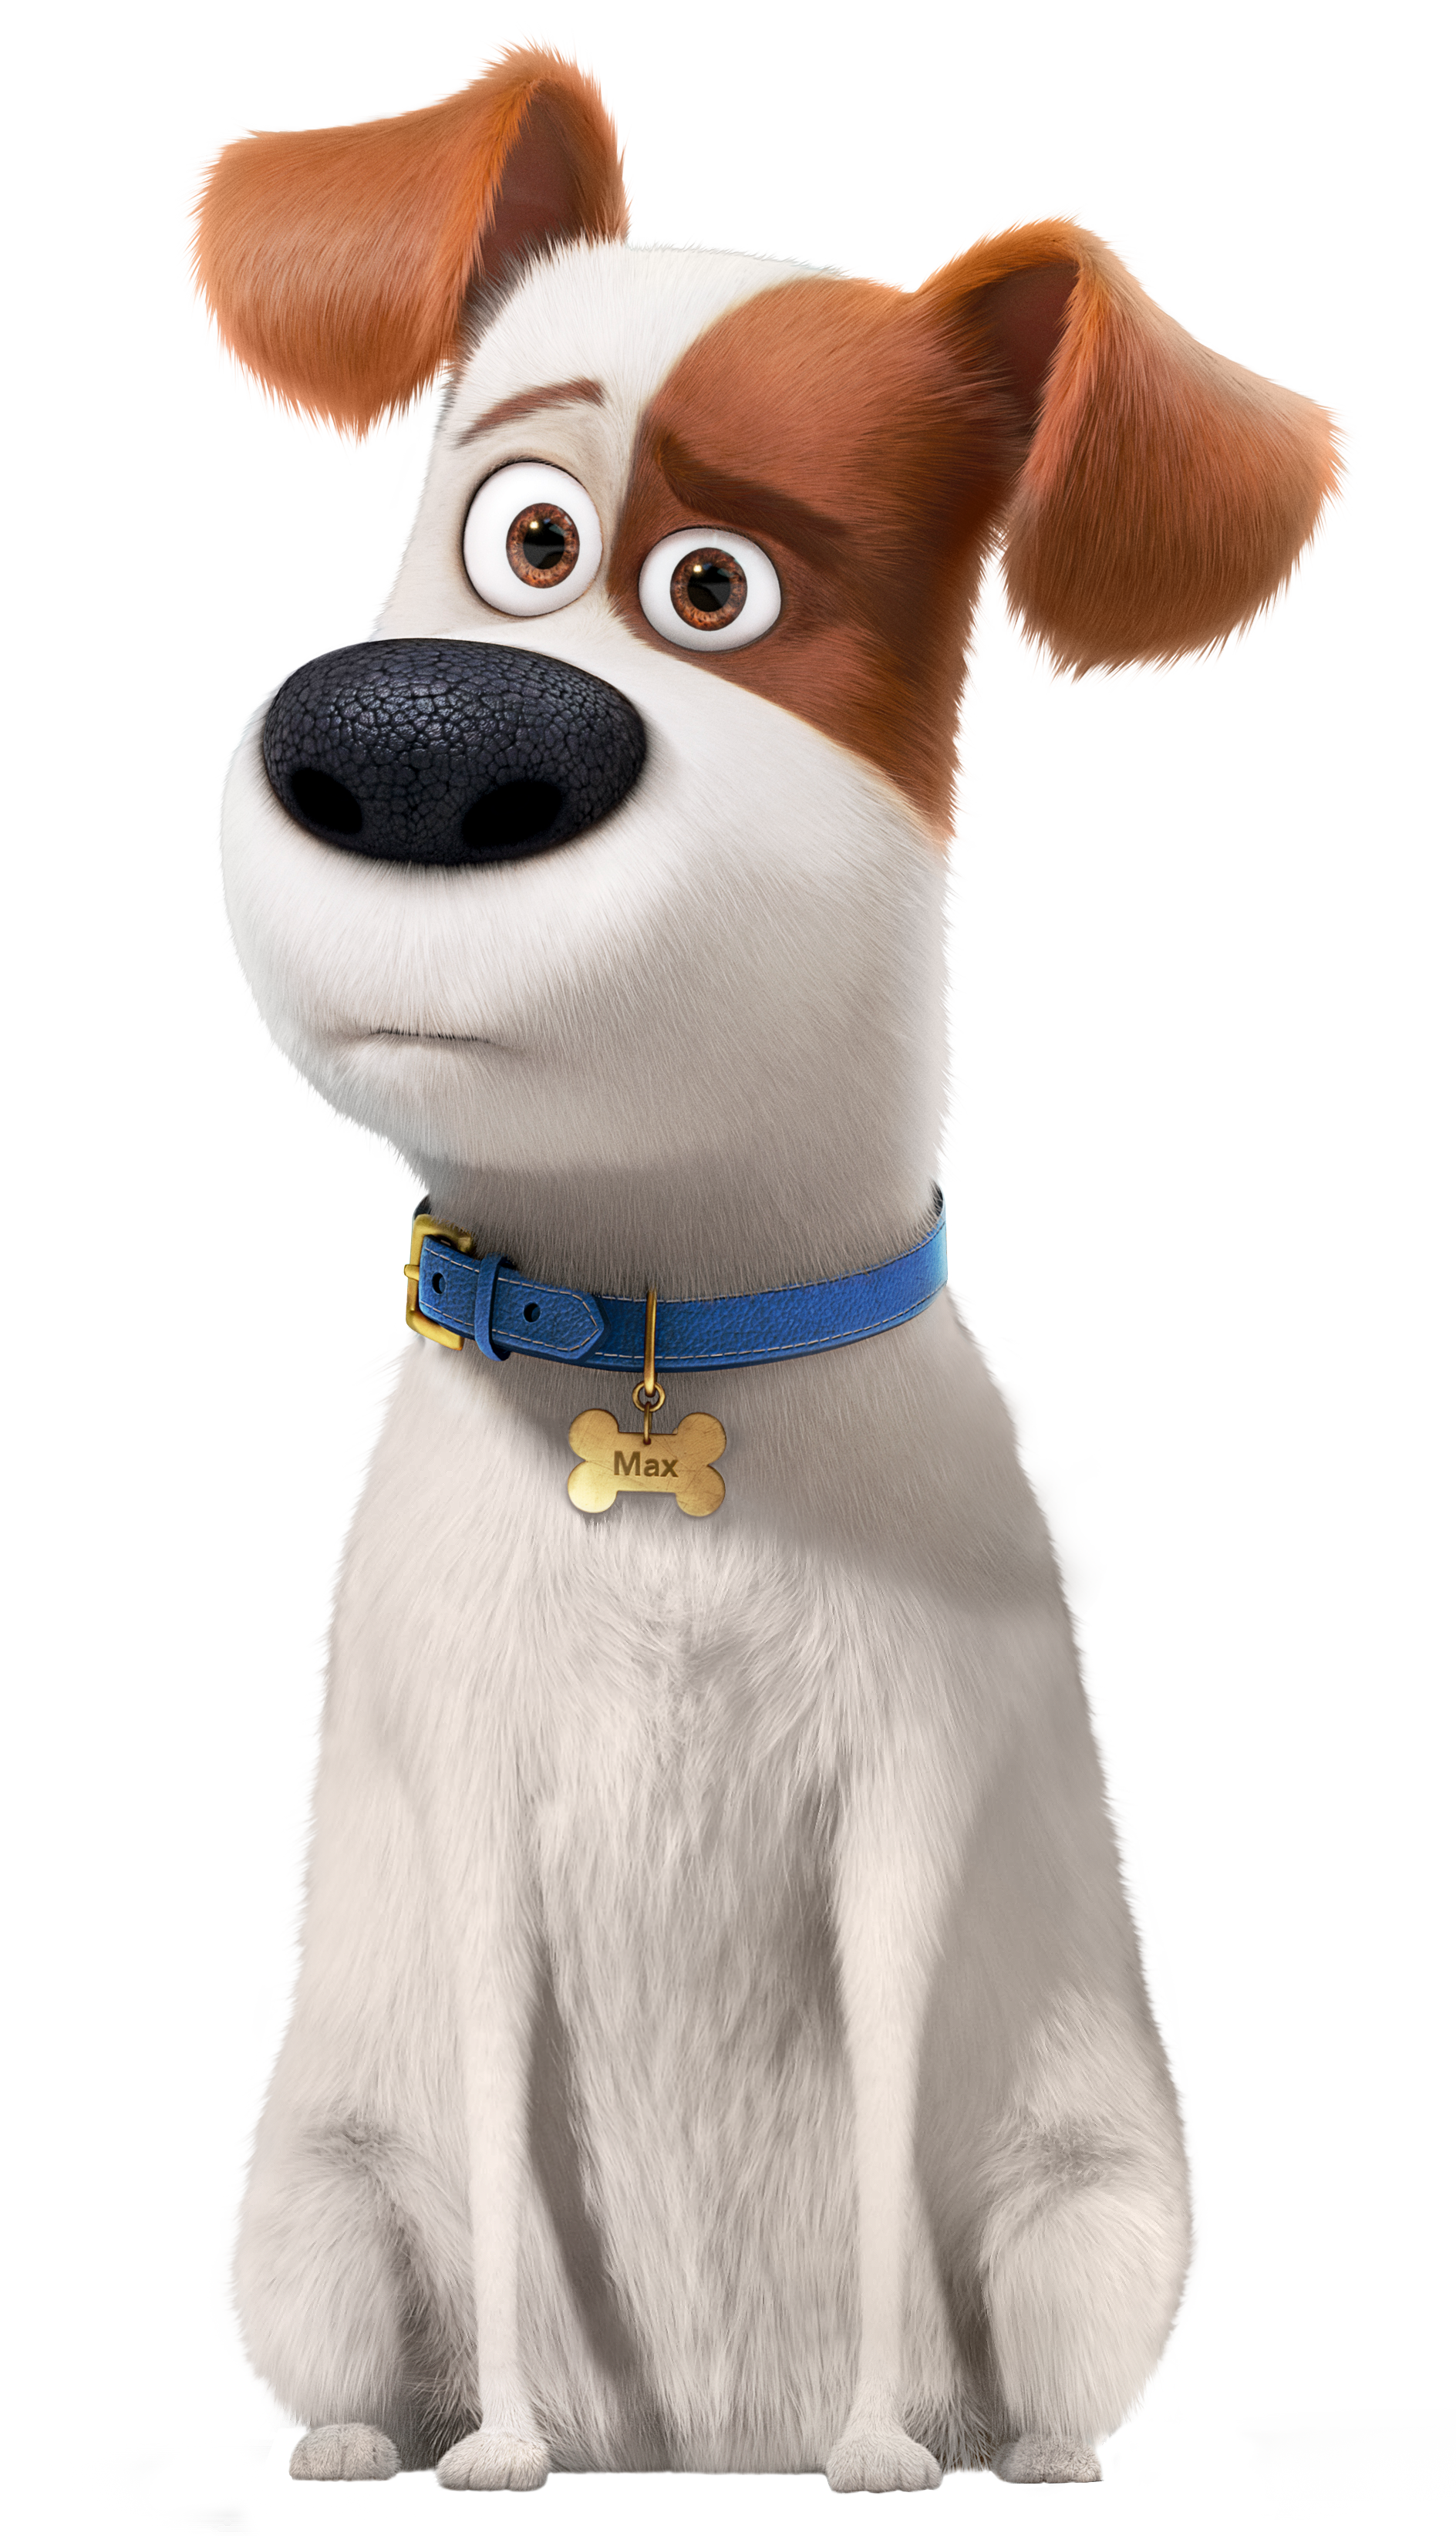 Pets clipart secret life pets. The of max transparent